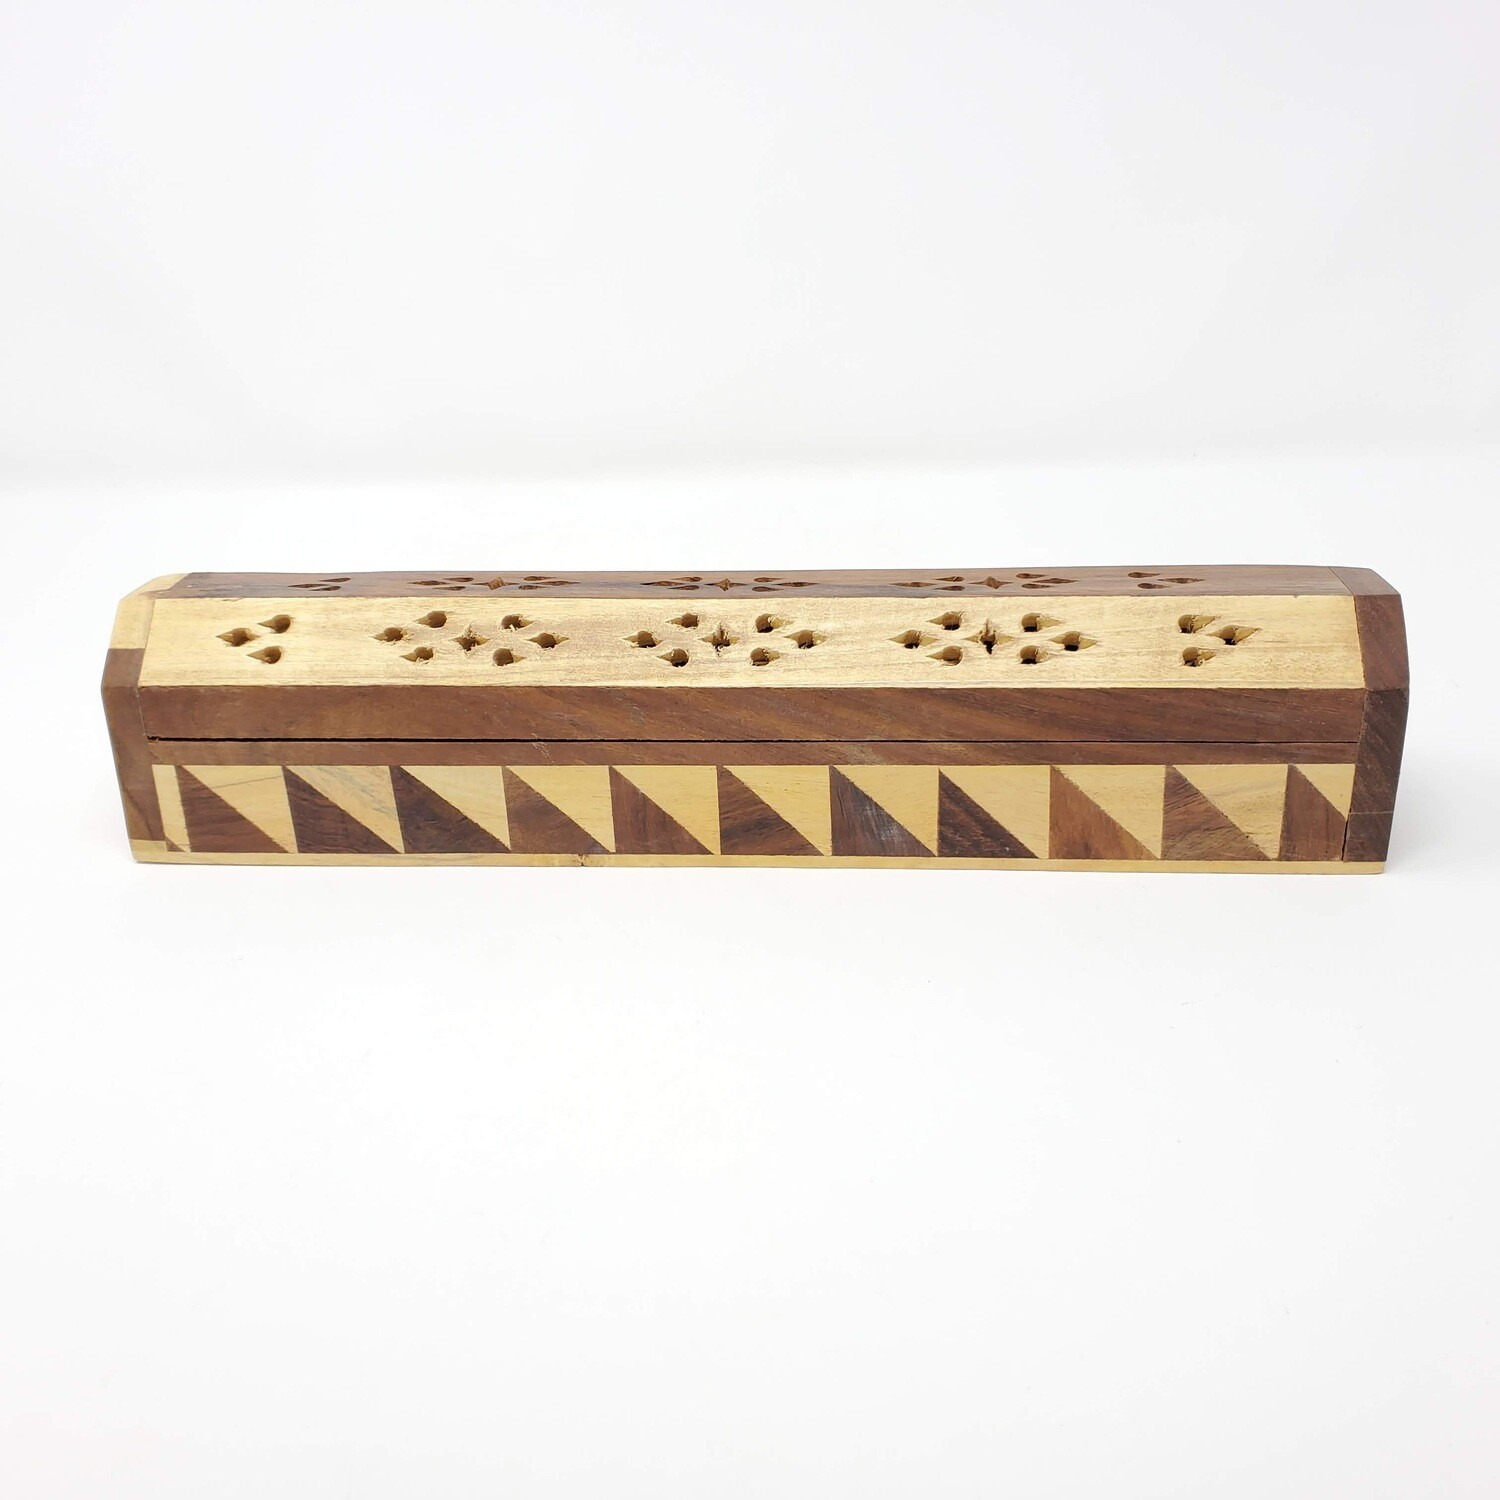 TWO TONE WOODEN COFFIN